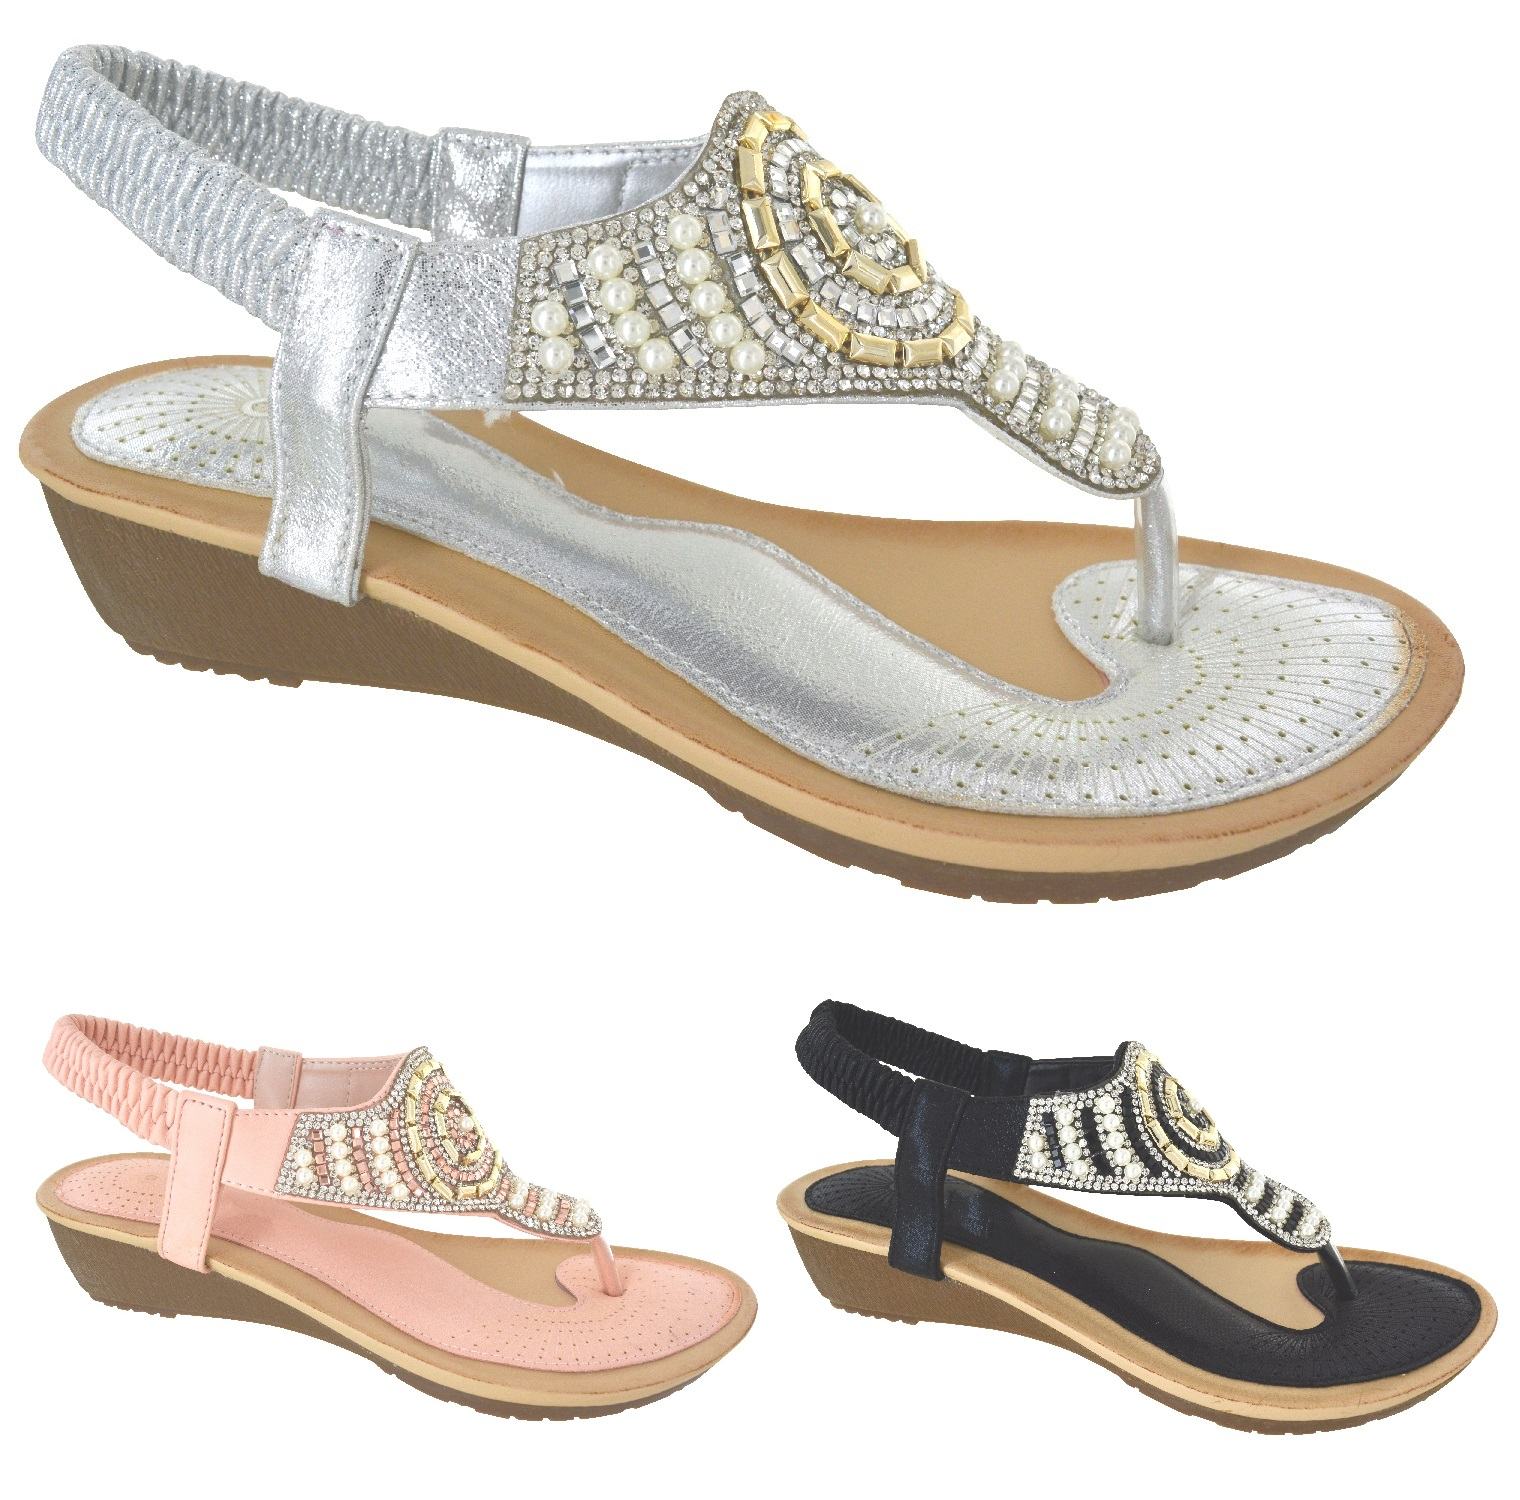 183e0091e618 LADIES WEDDING DIAMANTE FANCY SUMMER LOW WEDGE HEEL SANDALS WOMENS SHOES  SIZE